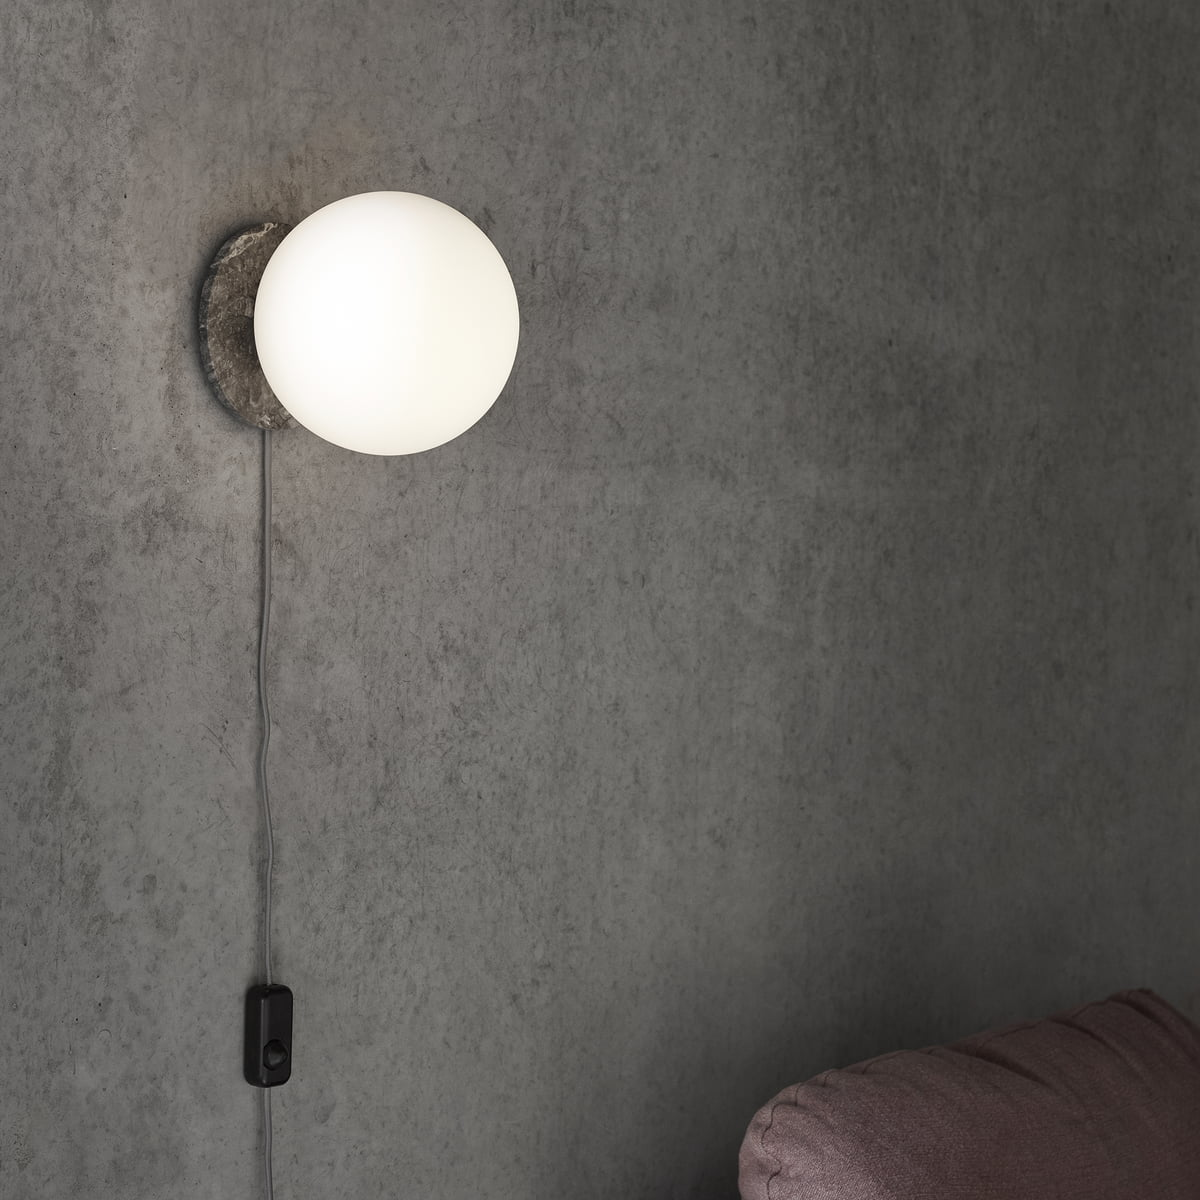 Tr wall and ceiling lamp by menu connox the menu tr table and wall lamp in marble grey aloadofball Gallery